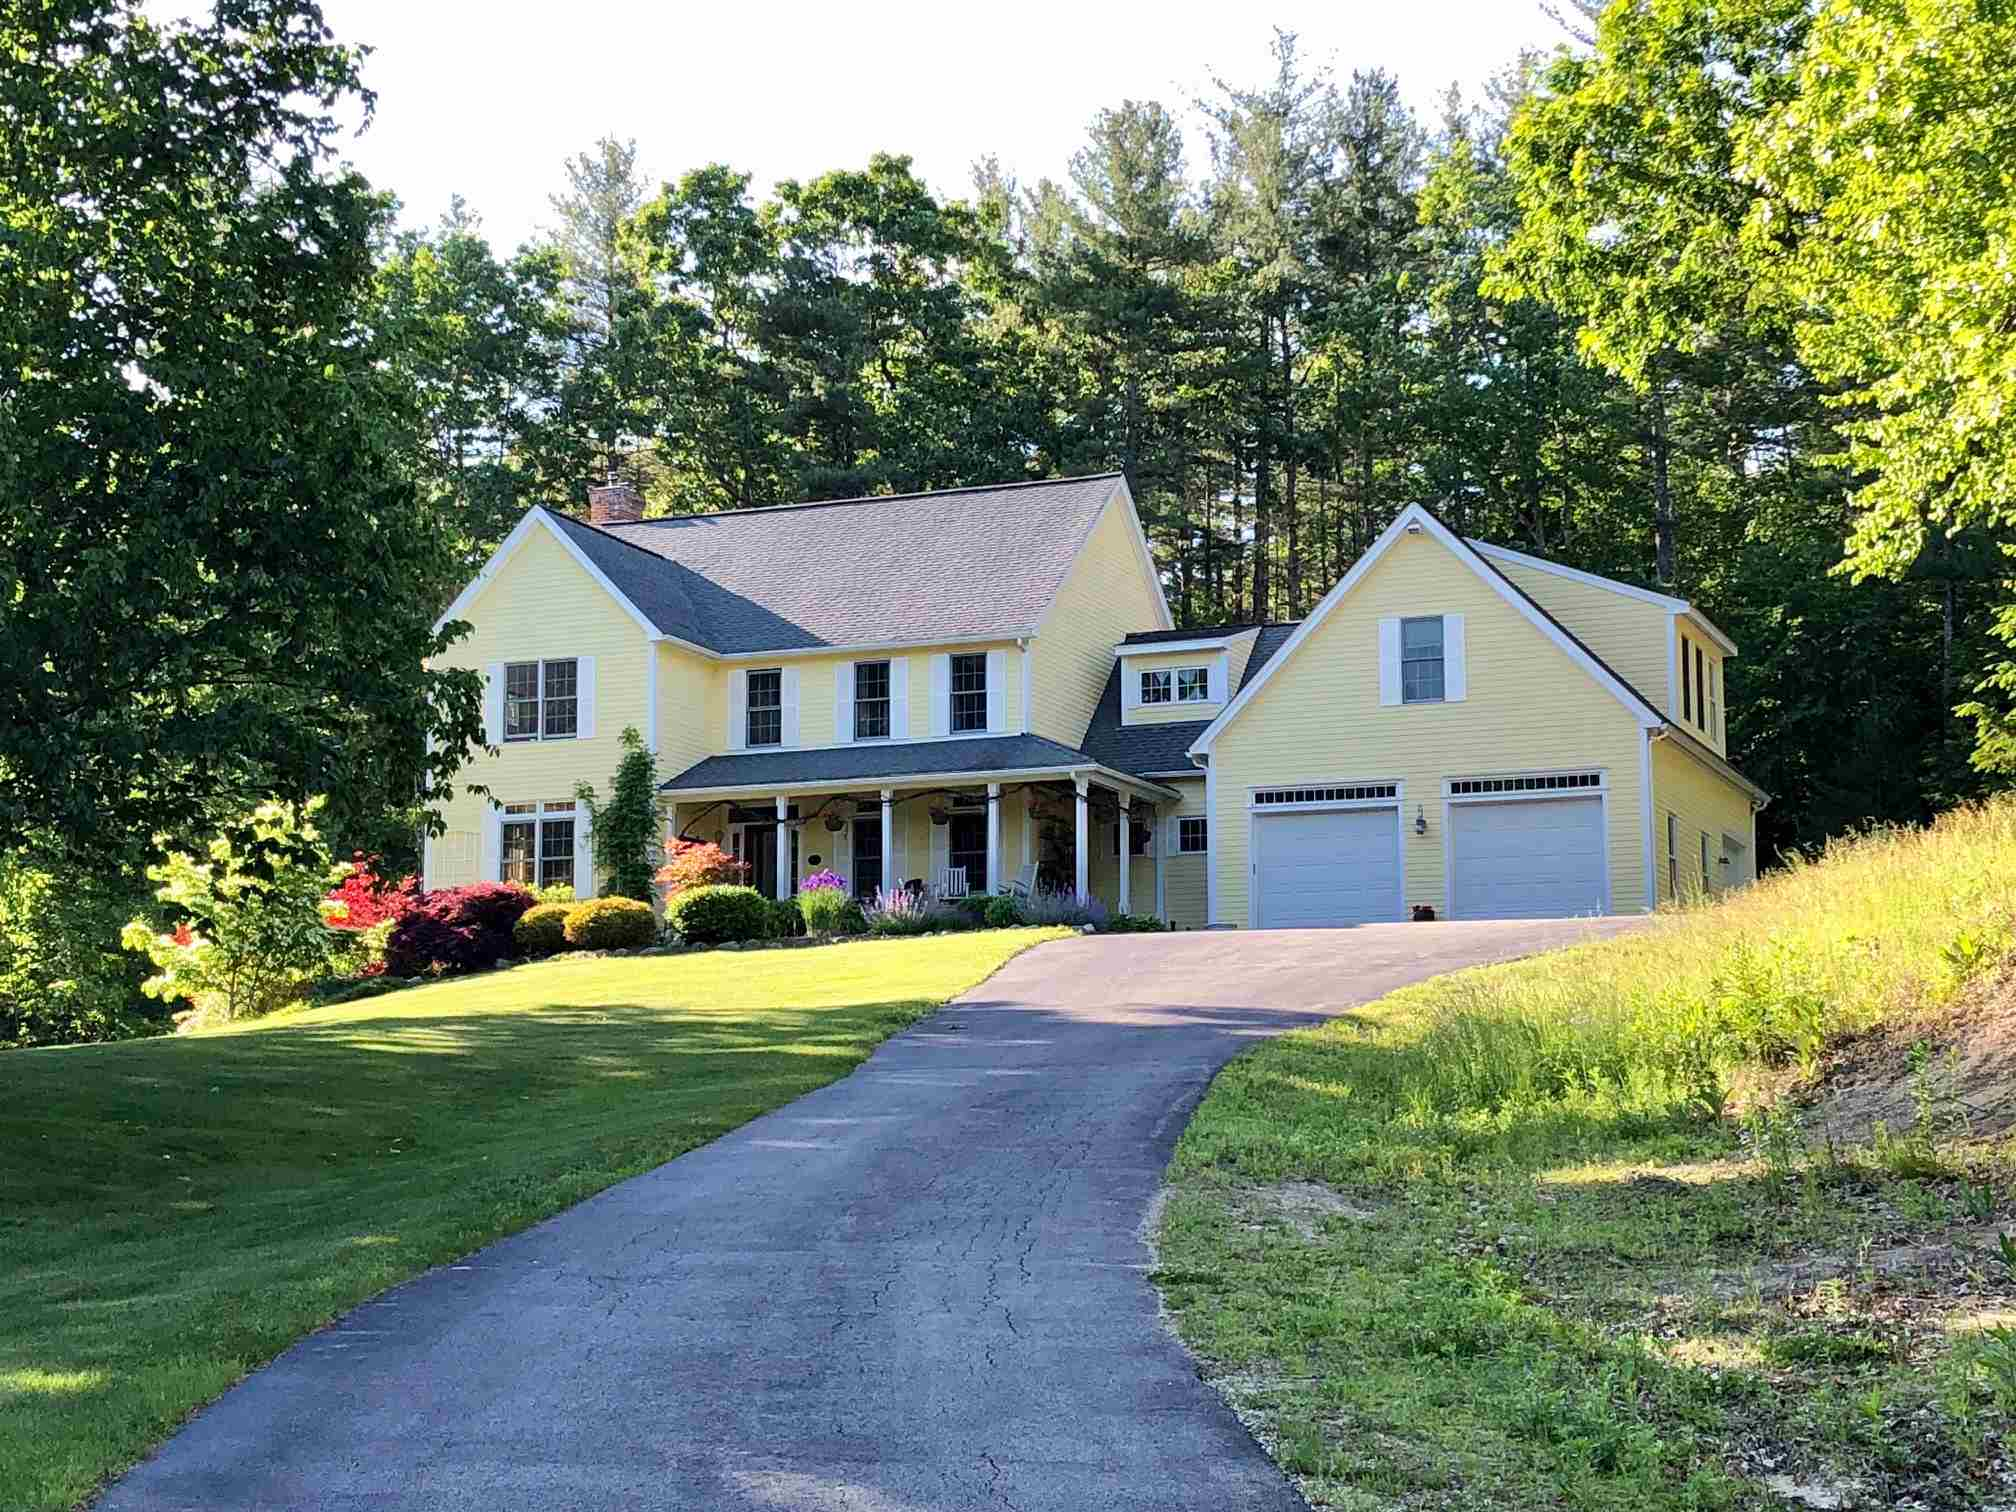 MLS 4794776: 7 Carol Ann Lane, Amherst NH